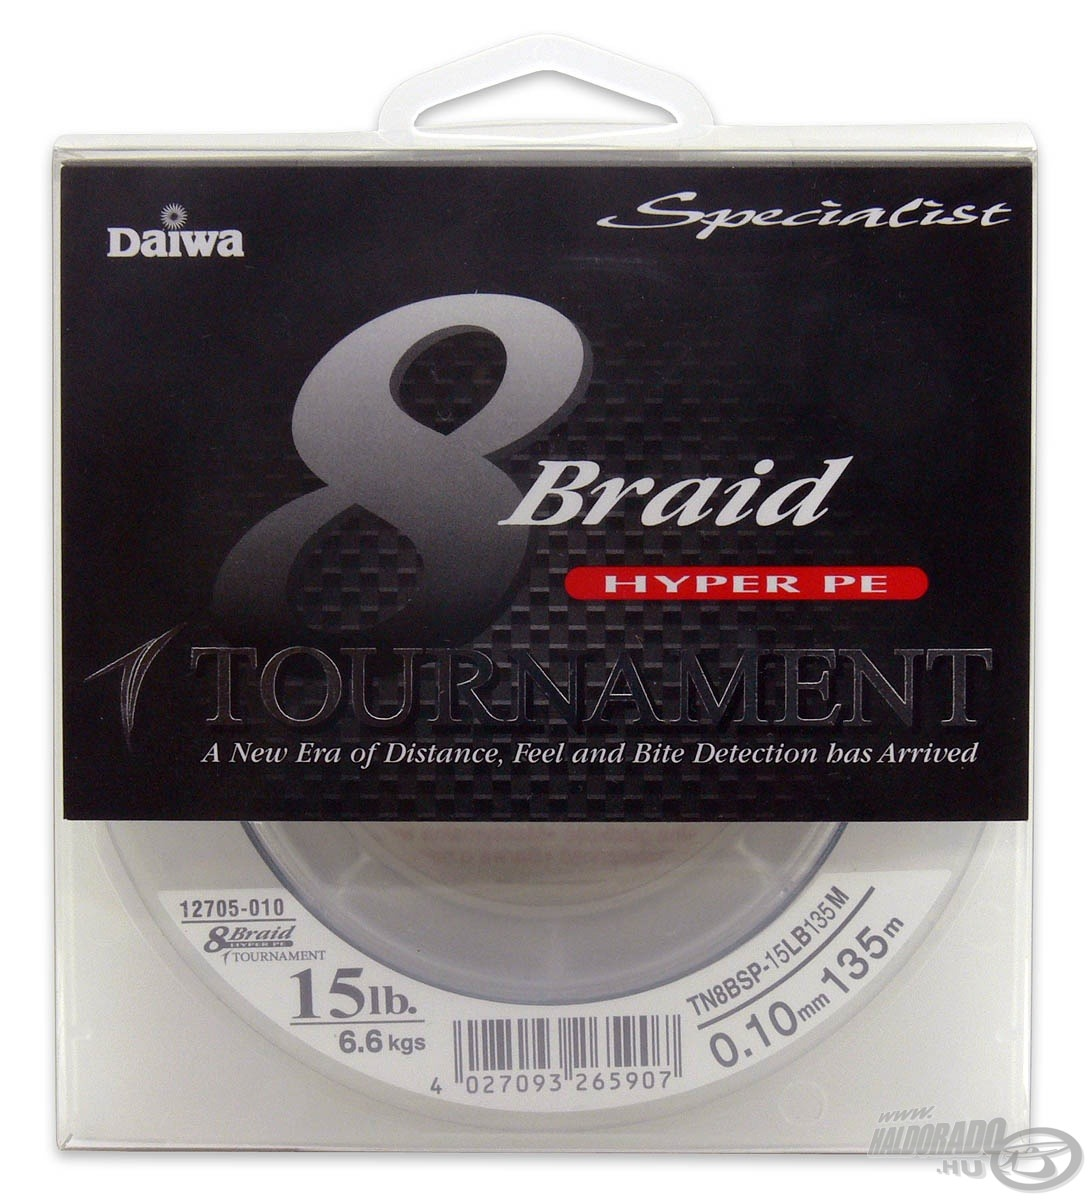 DAIWA, Tournament, 8X, Braid, 0,10, mm, -, 135, m 12490, helyett, 10490Ft